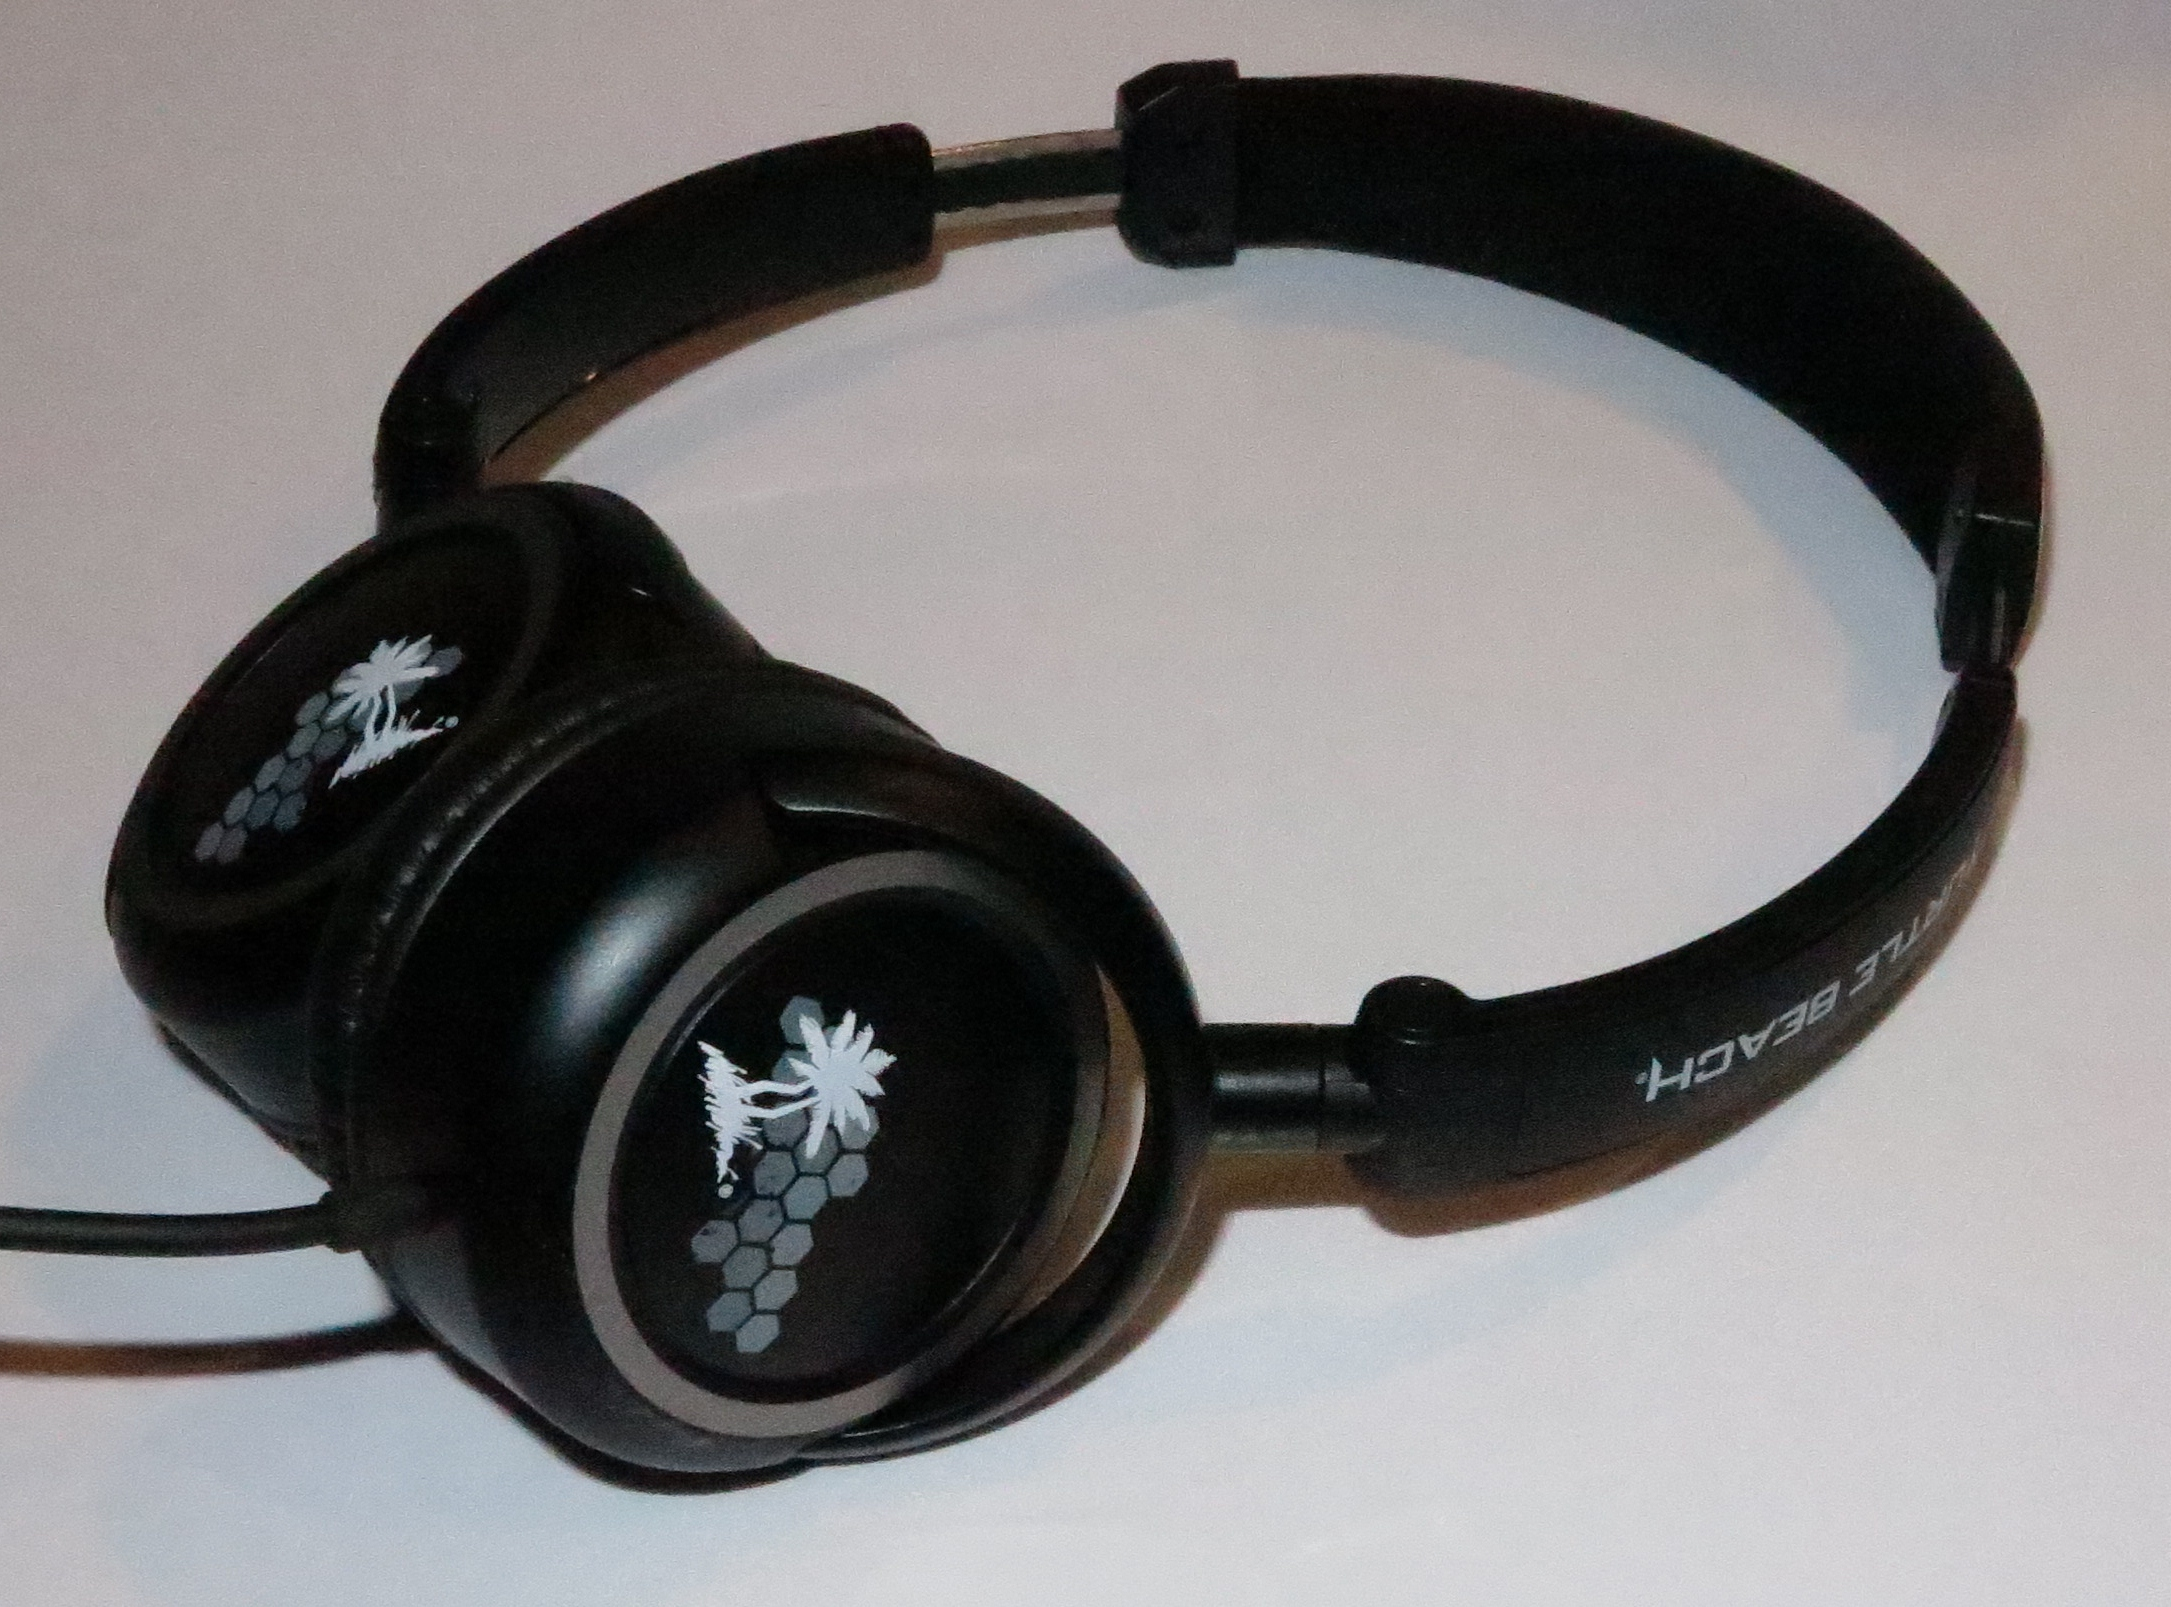 Product Review–Voyetra Turtle Beach M3 Gaming Headset